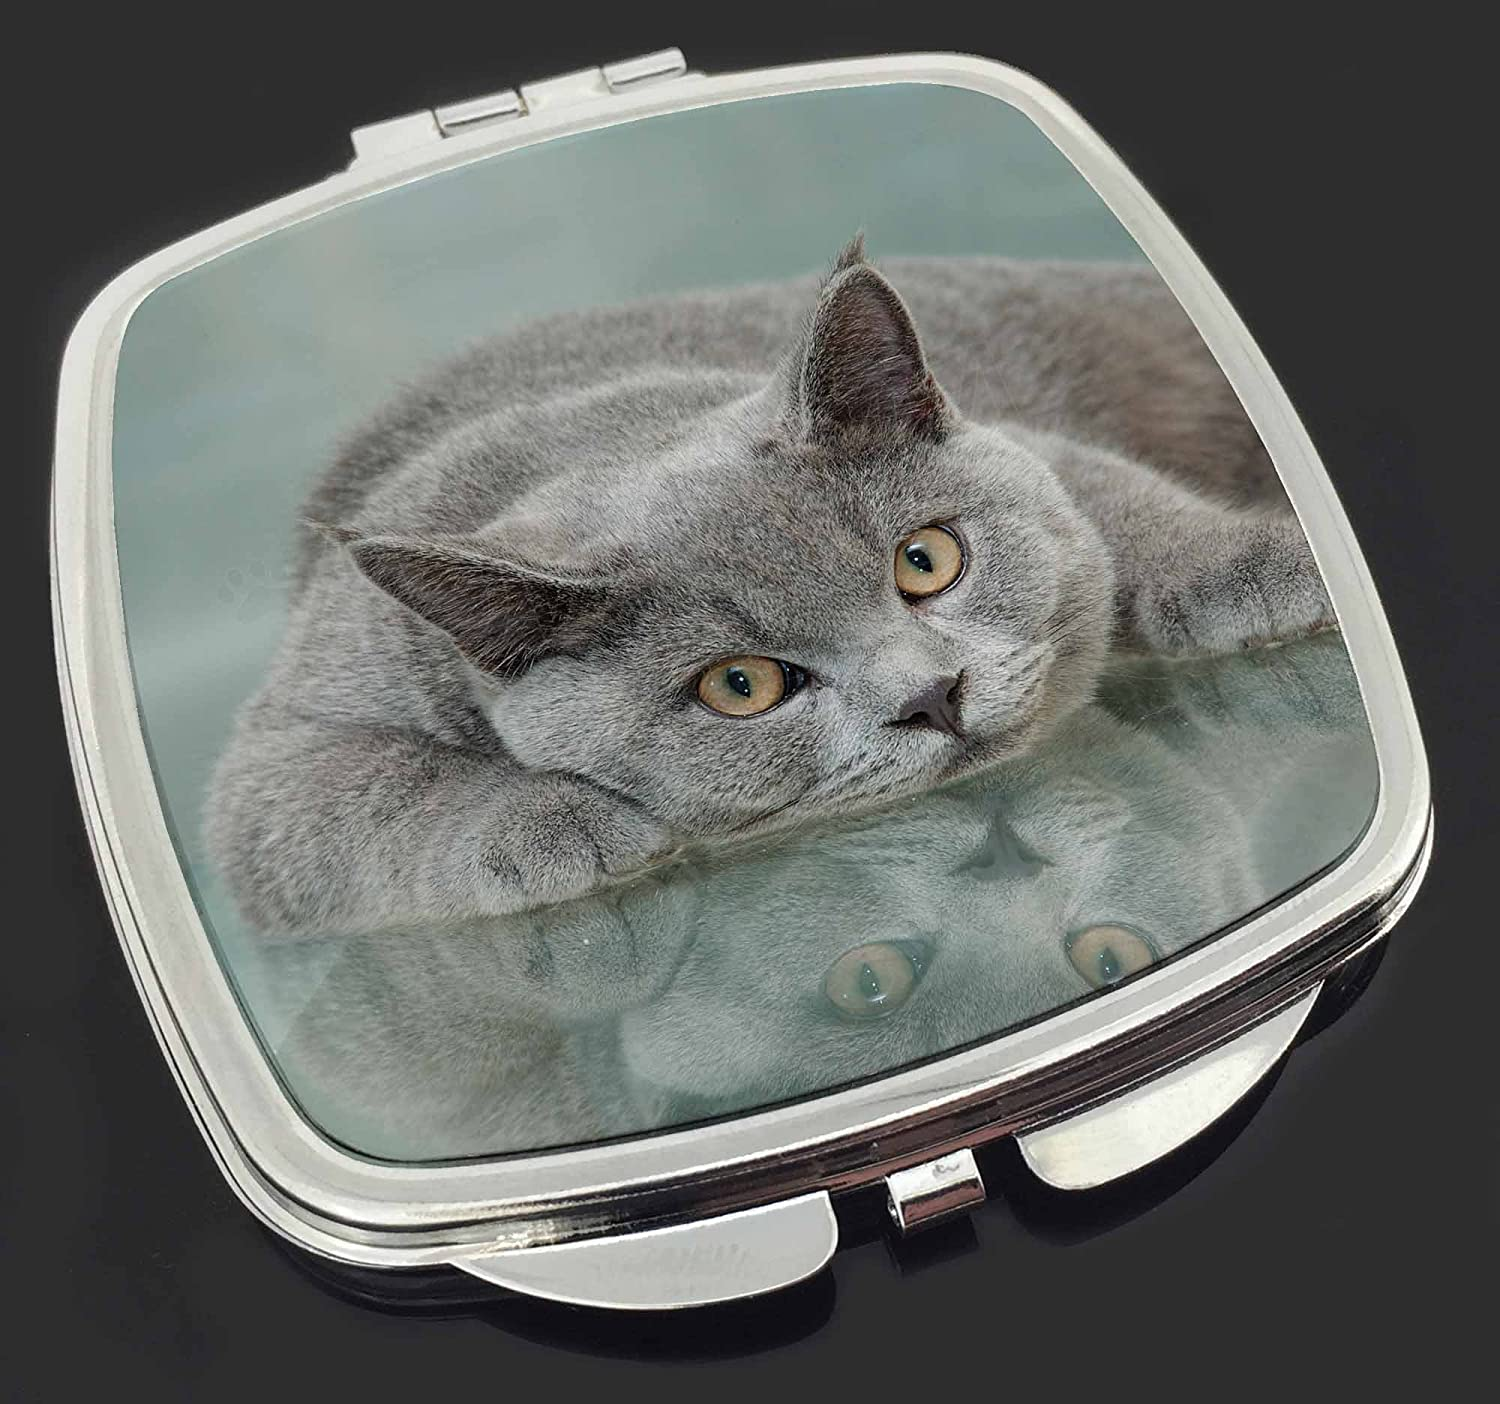 British Blue Cat Laying on Glass Make-Up Compact Mirror Stocking Filler Gift Advanta Products